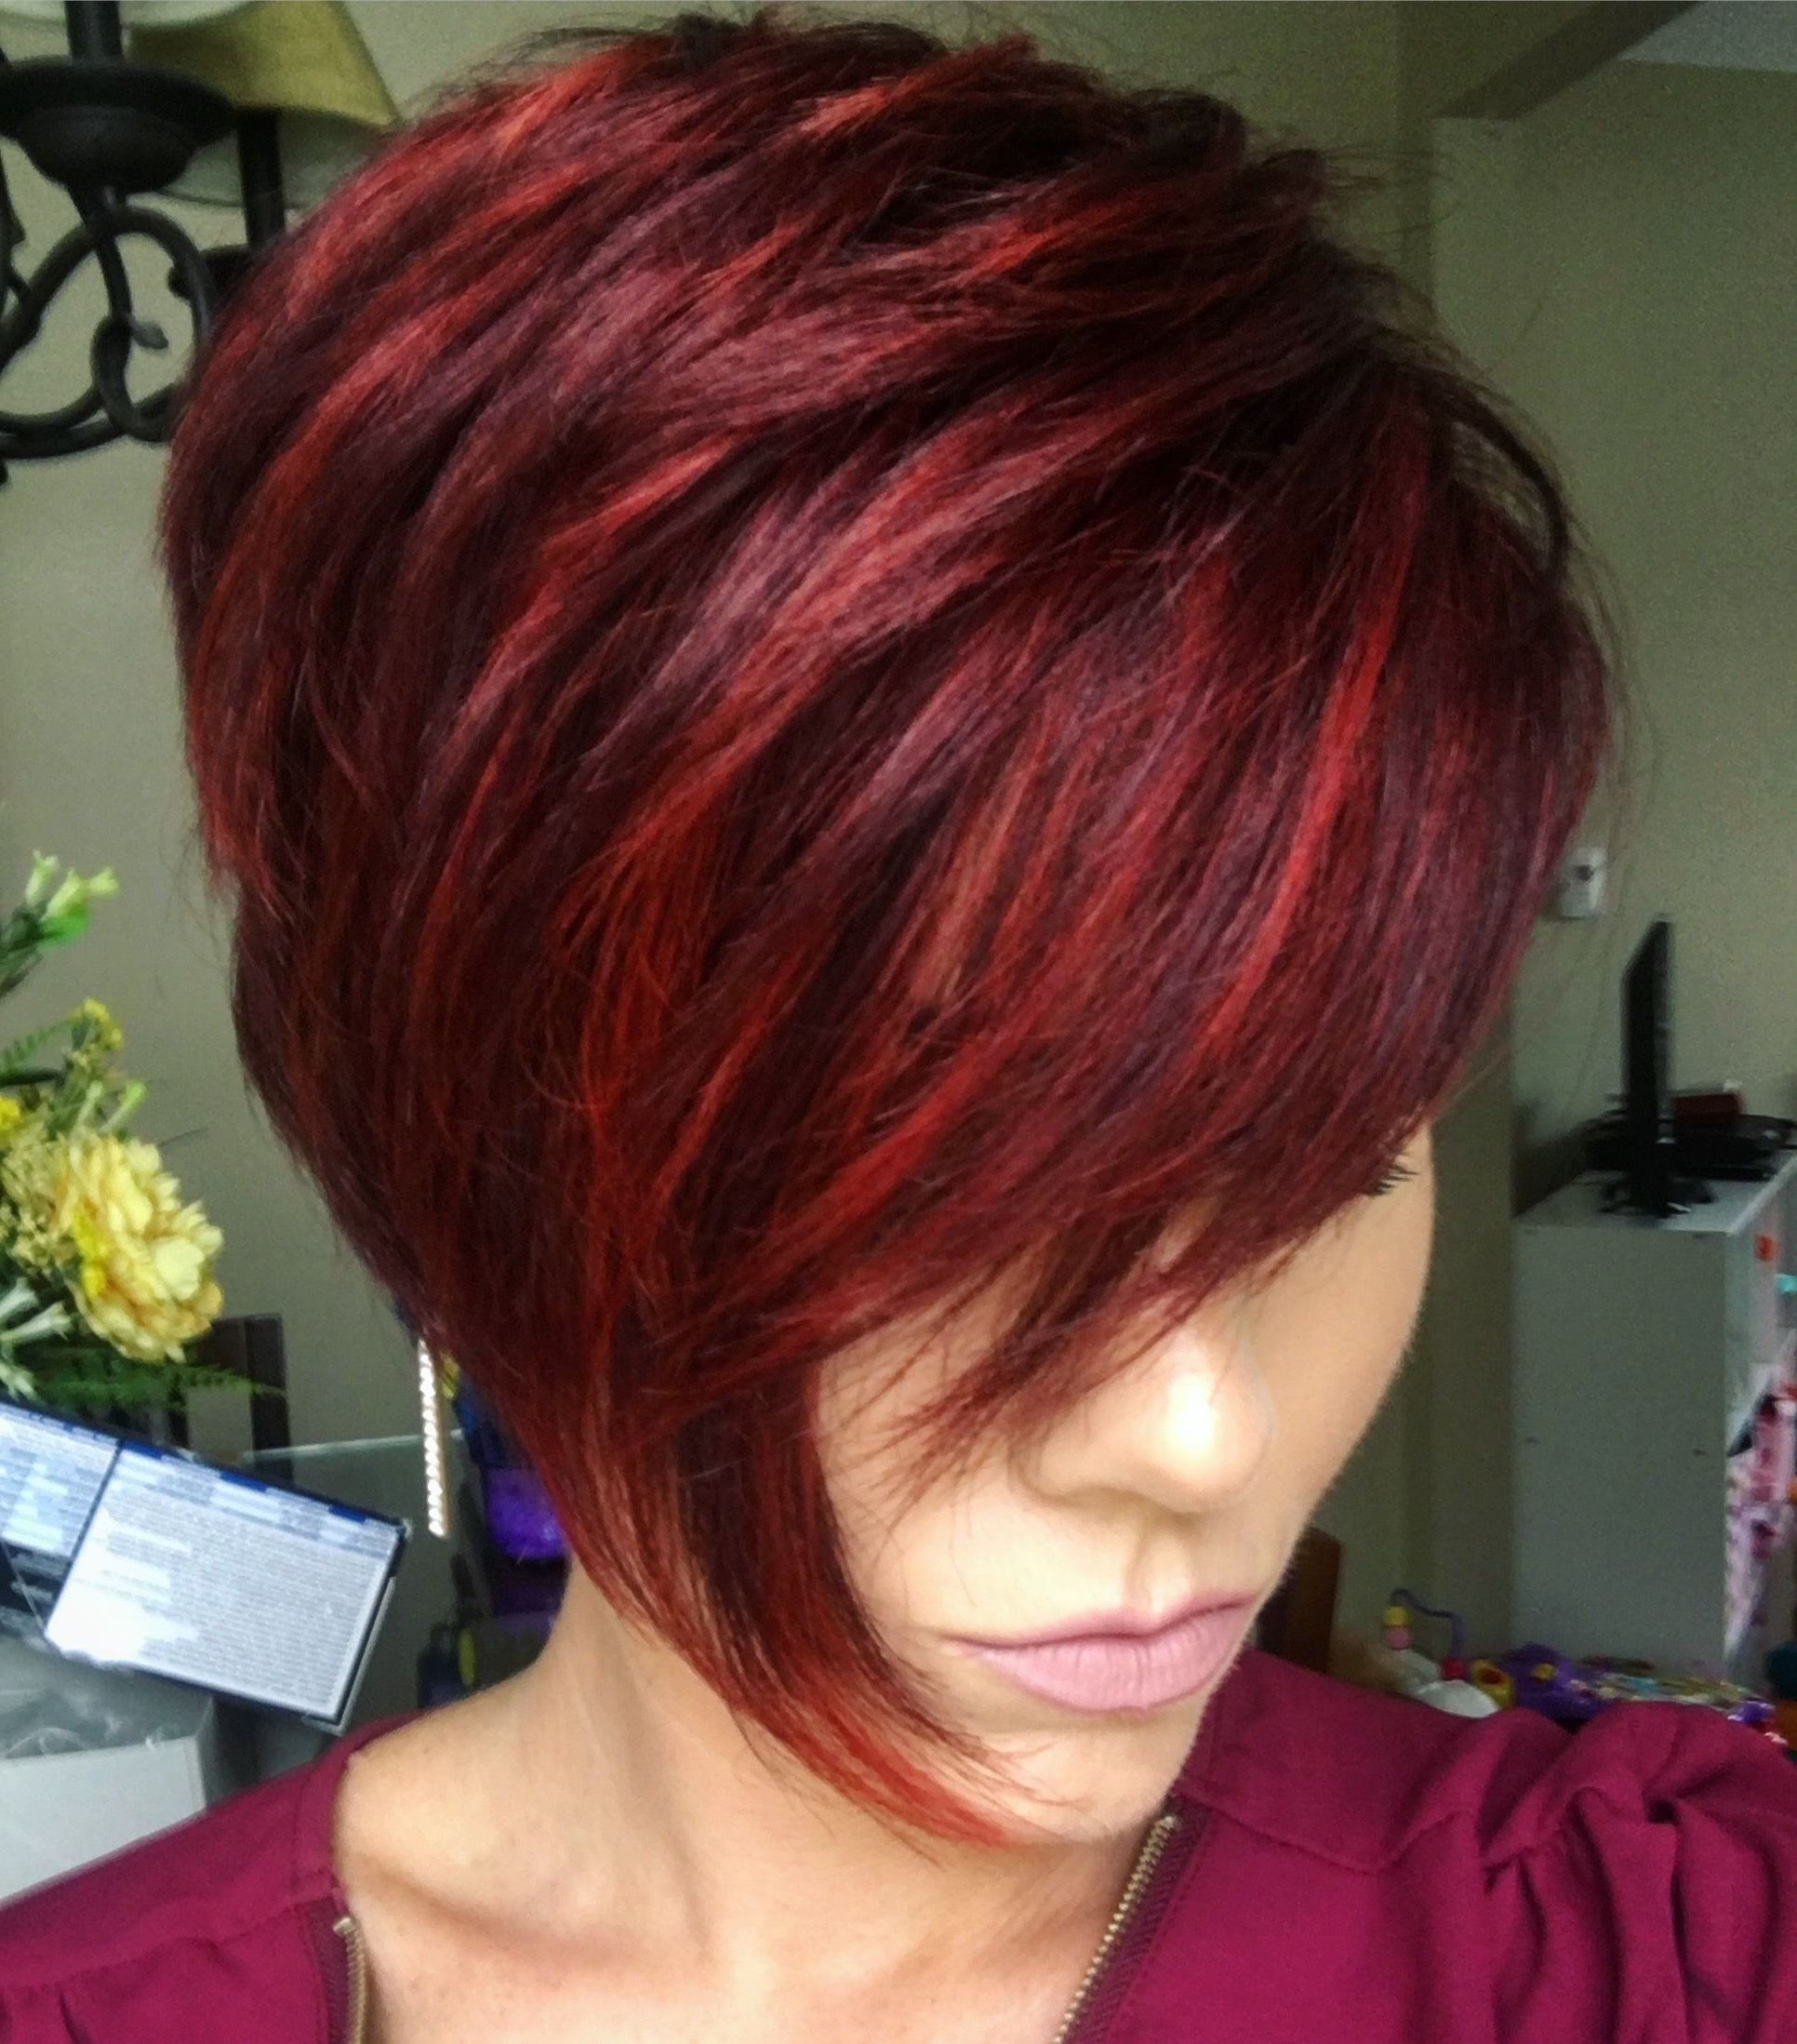 Pin On Hairstyles/inspiration Inside Most Up To Date Pageboy Maroon Red Pixie Haircuts (View 3 of 20)